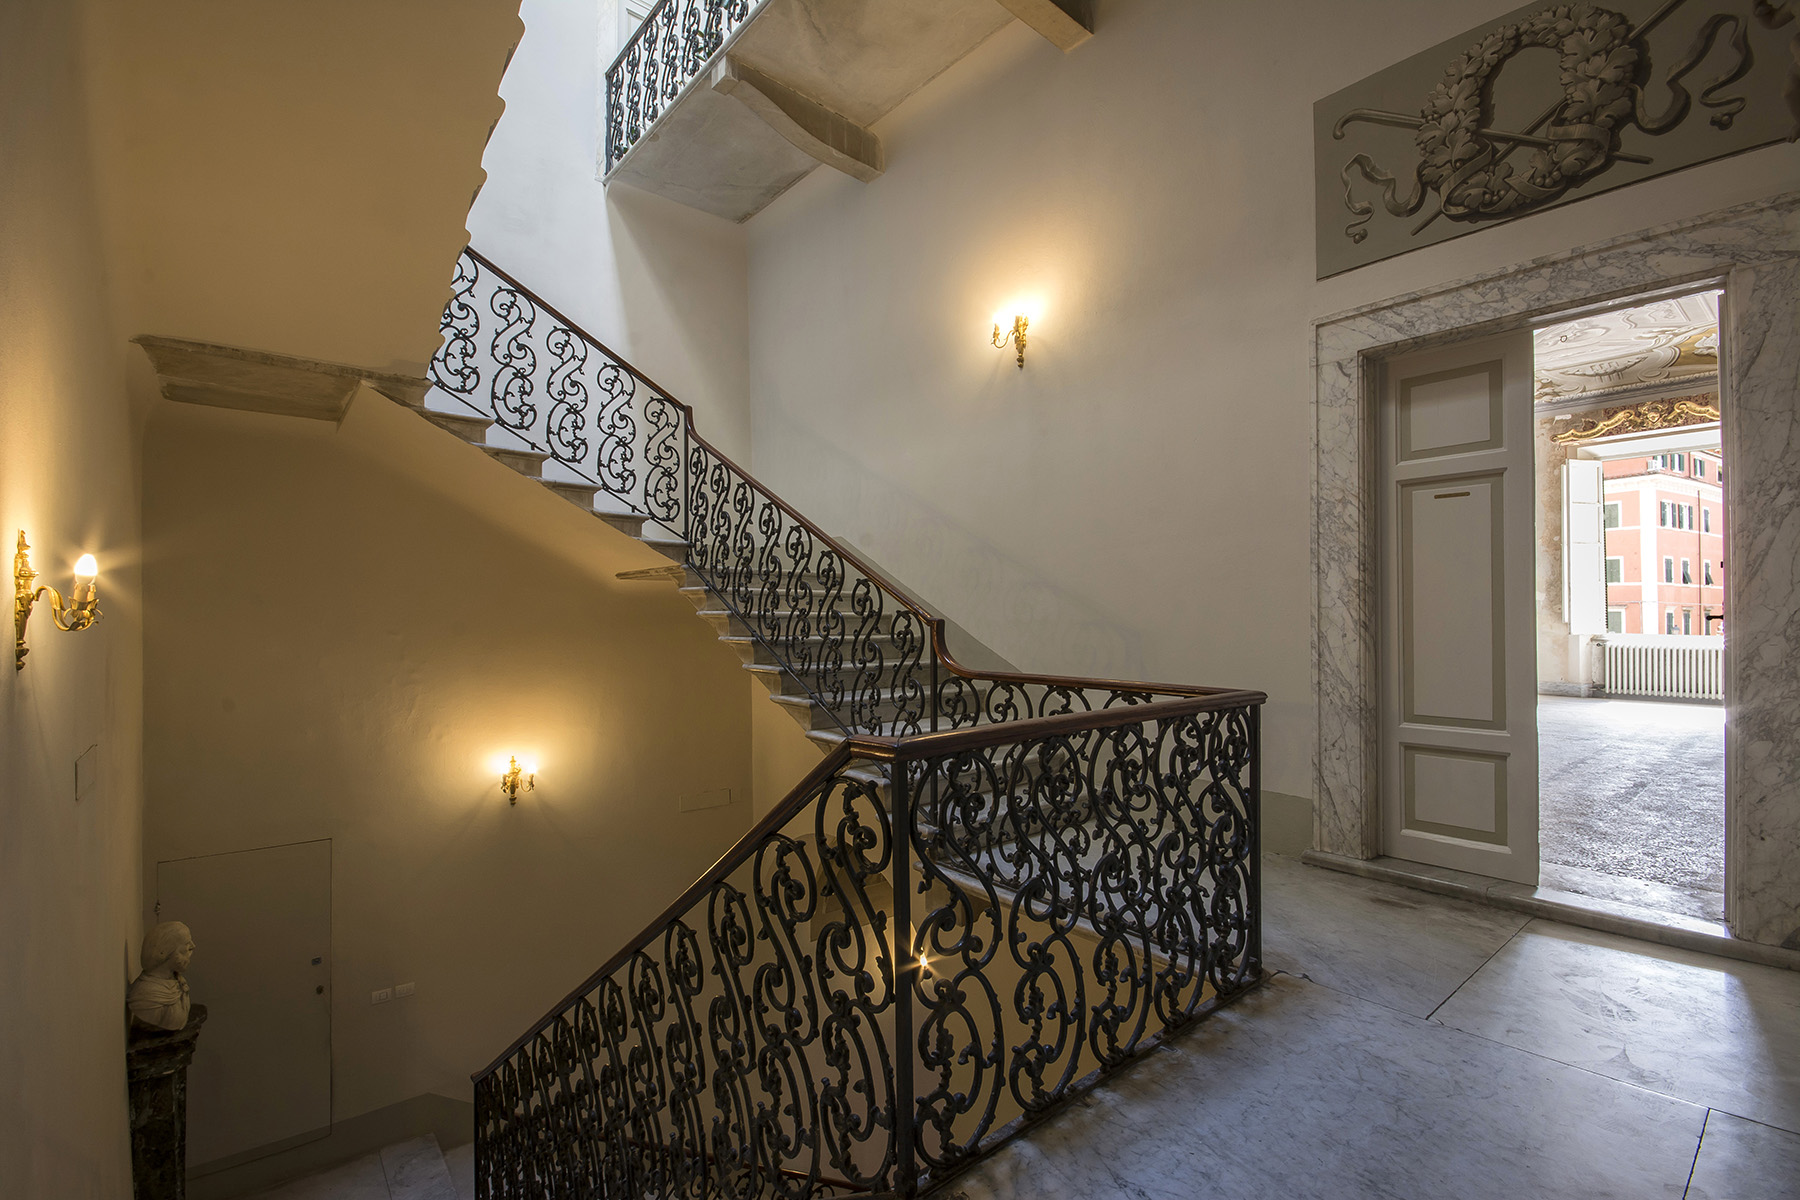 Additional photo for property listing at Magnificent Renaissance Palazzo in the center of Carrara Carrara, Massa Carrara Italien